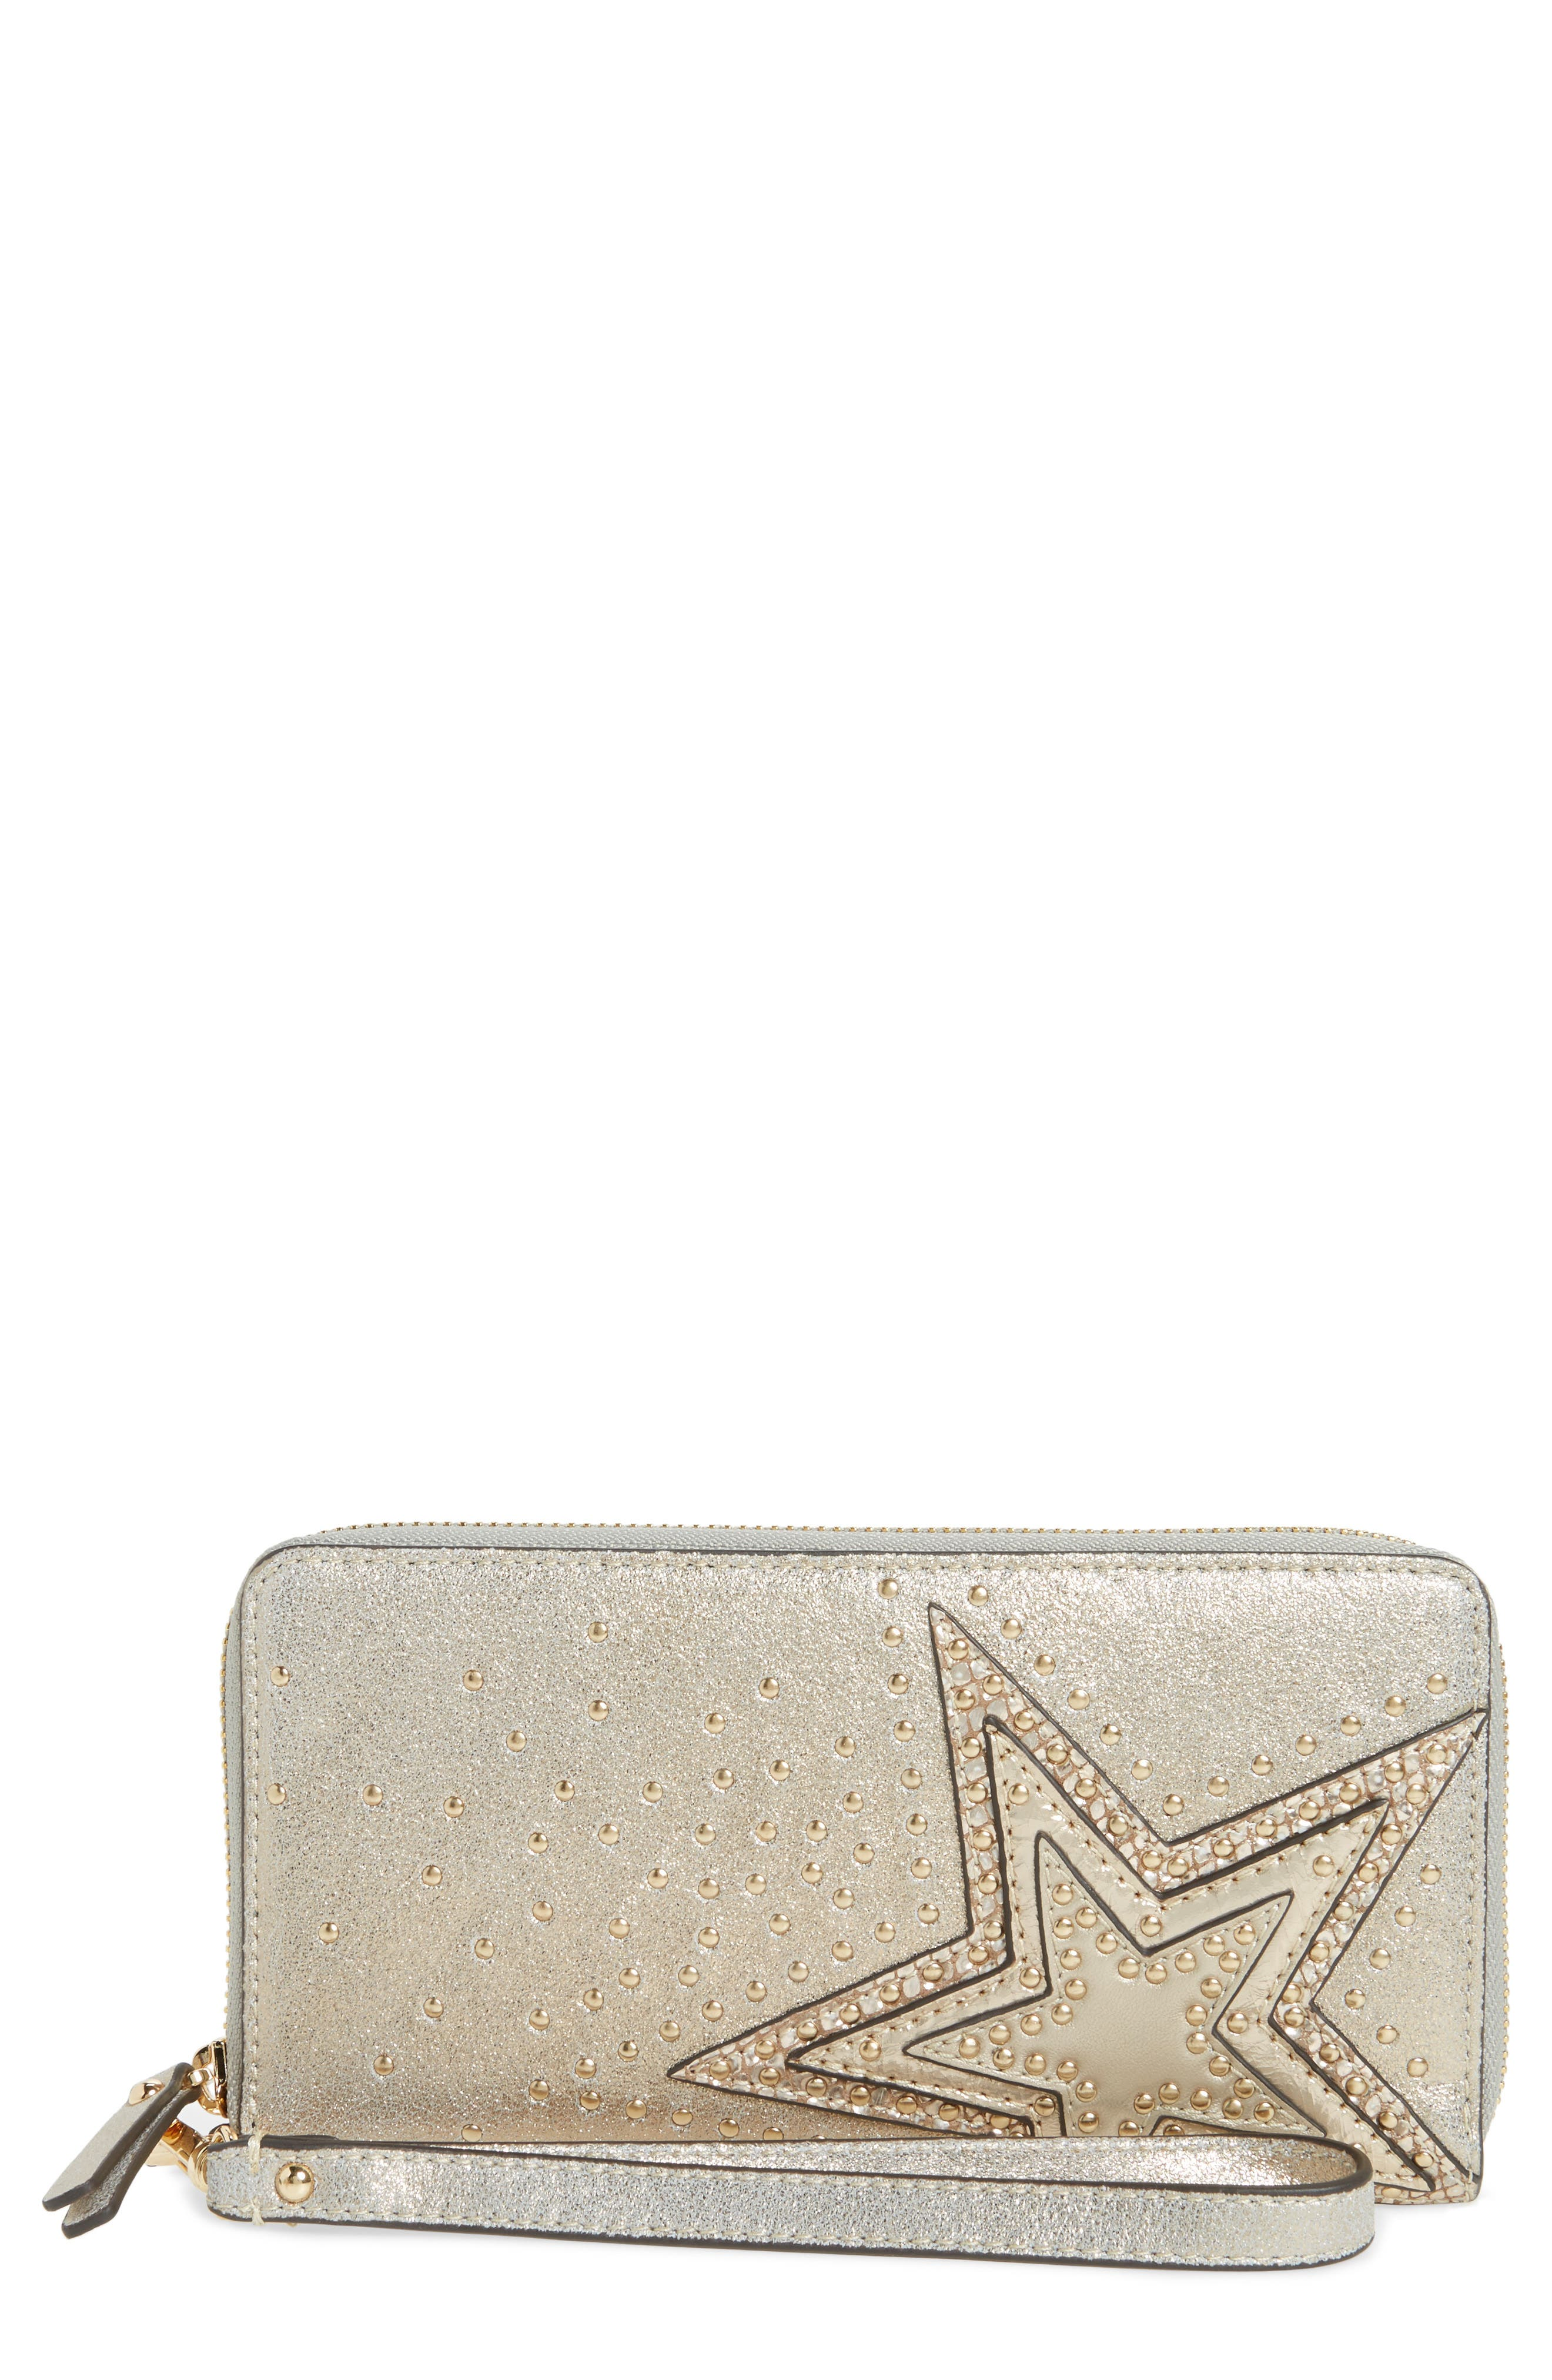 Taz Leather Zip Around Wallet,                             Main thumbnail 1, color,                             250